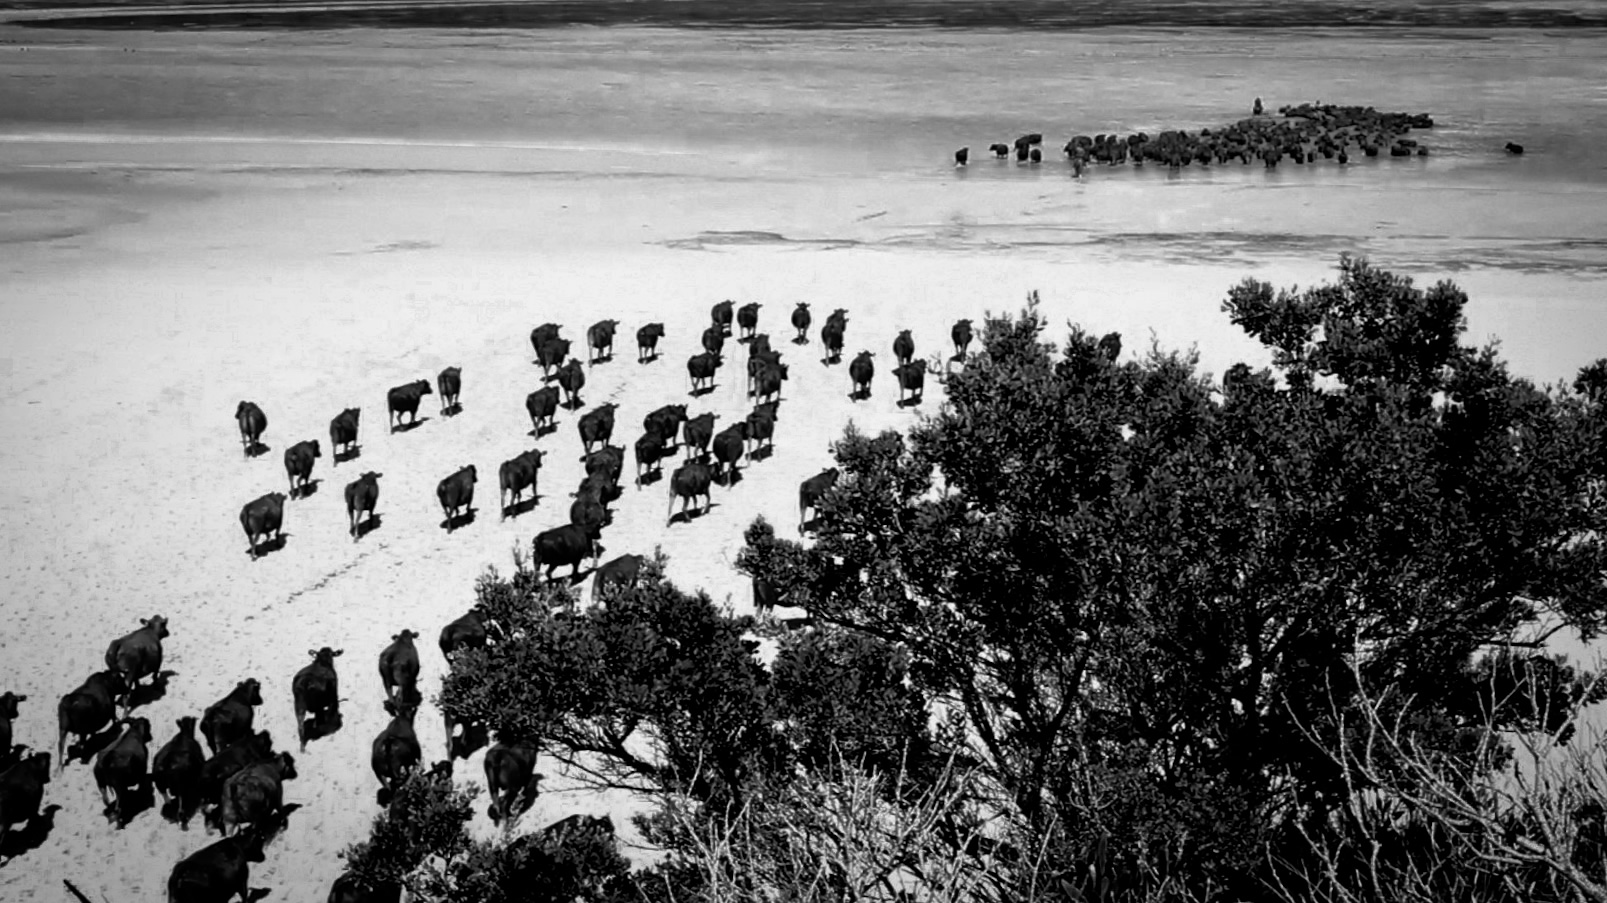 WA 和 - Cattle moving across Mosquito Sound, Robbins Island, Tasmania.